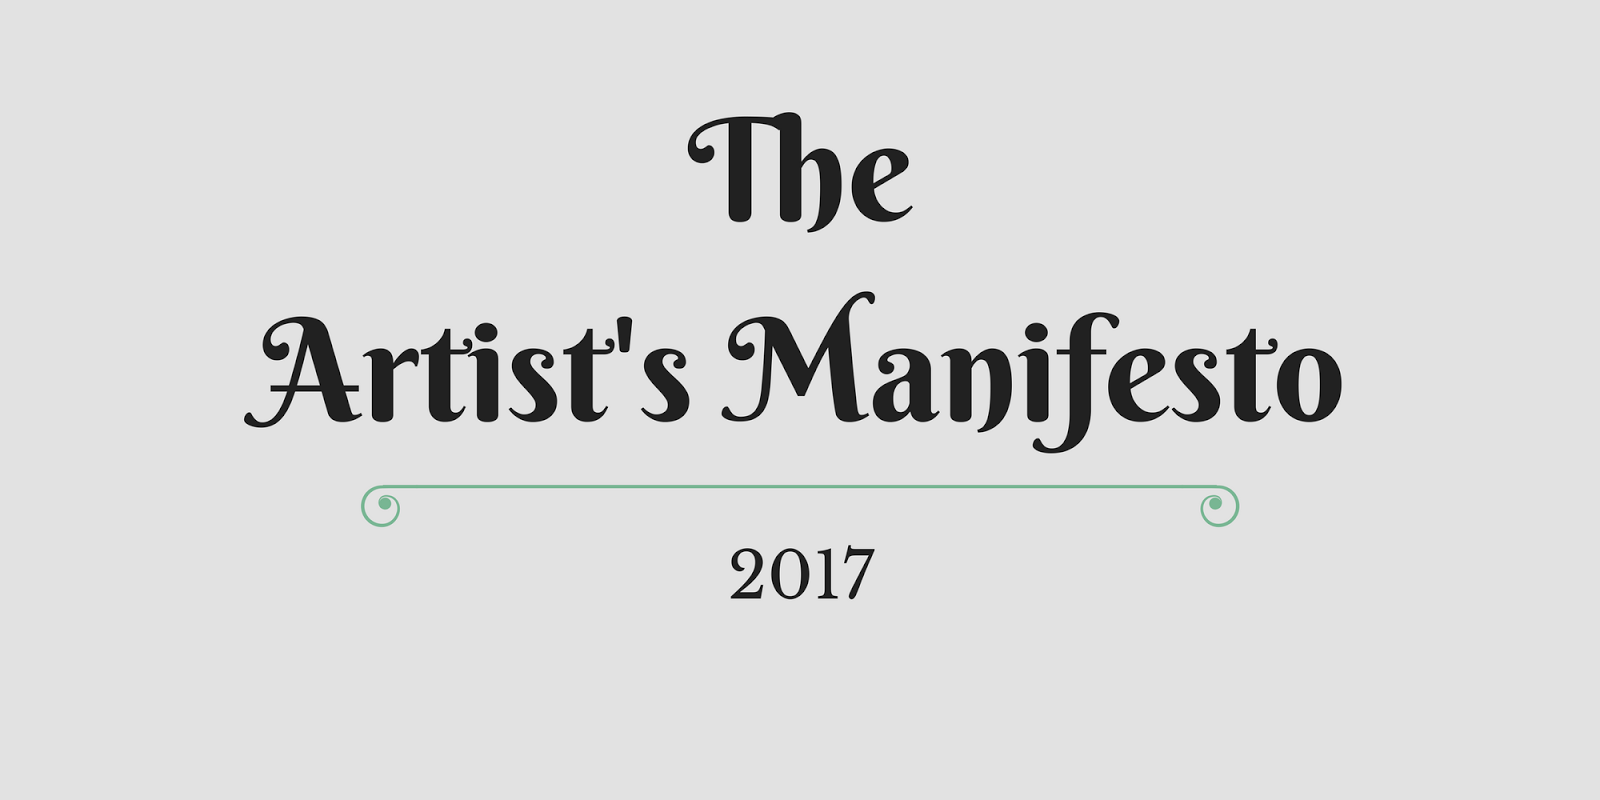 Read the Artists Manifesto - By Artist Larry G. Maguire